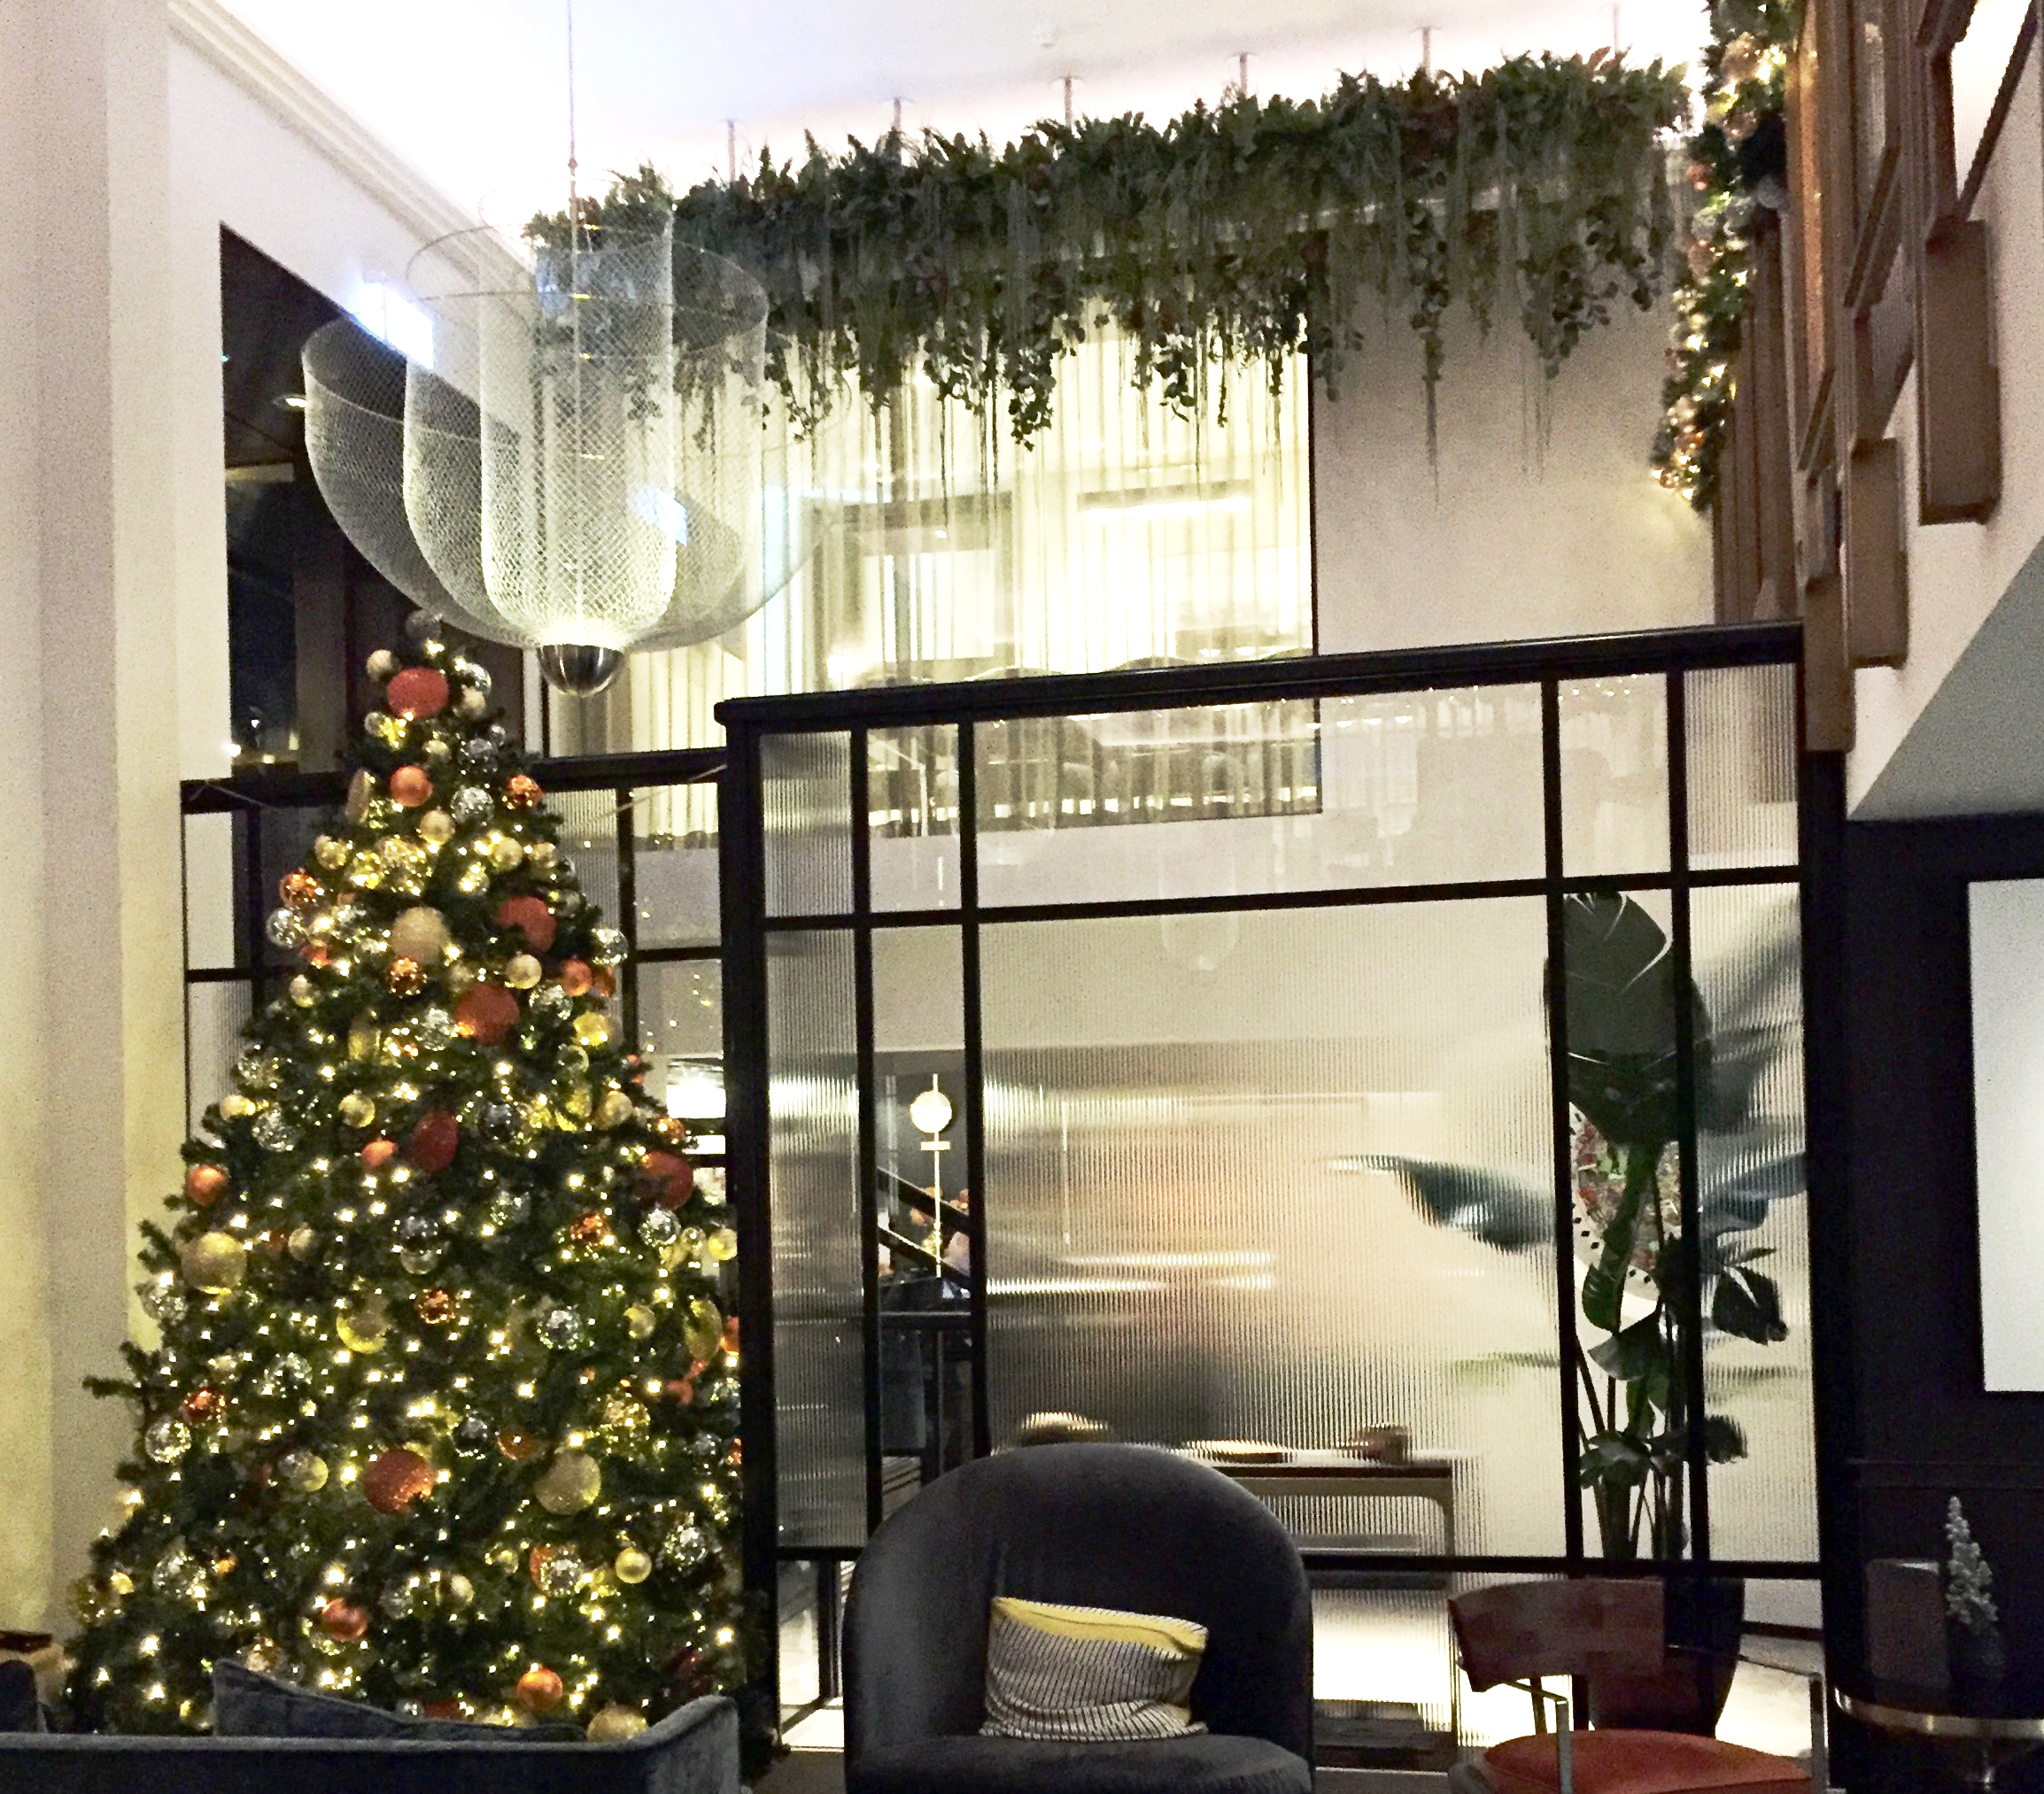 Christmas at Galvin At The Athenaeum - Review